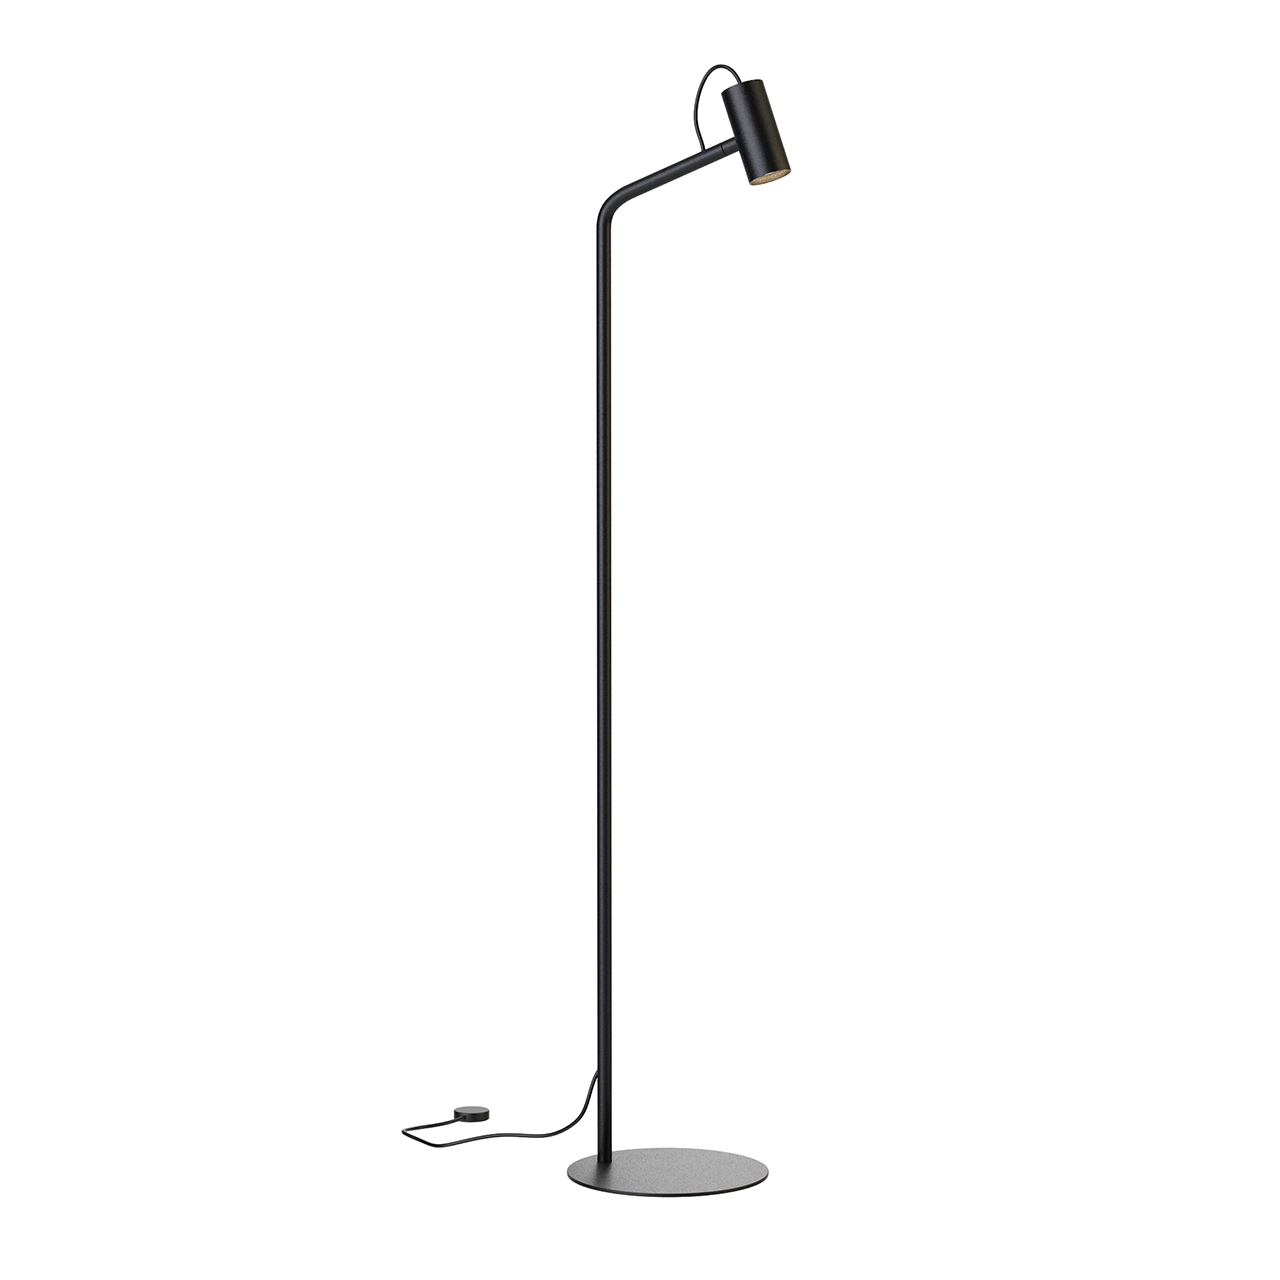 Roomor 1 Floor Lamp 638120B00 by Wever Ducre